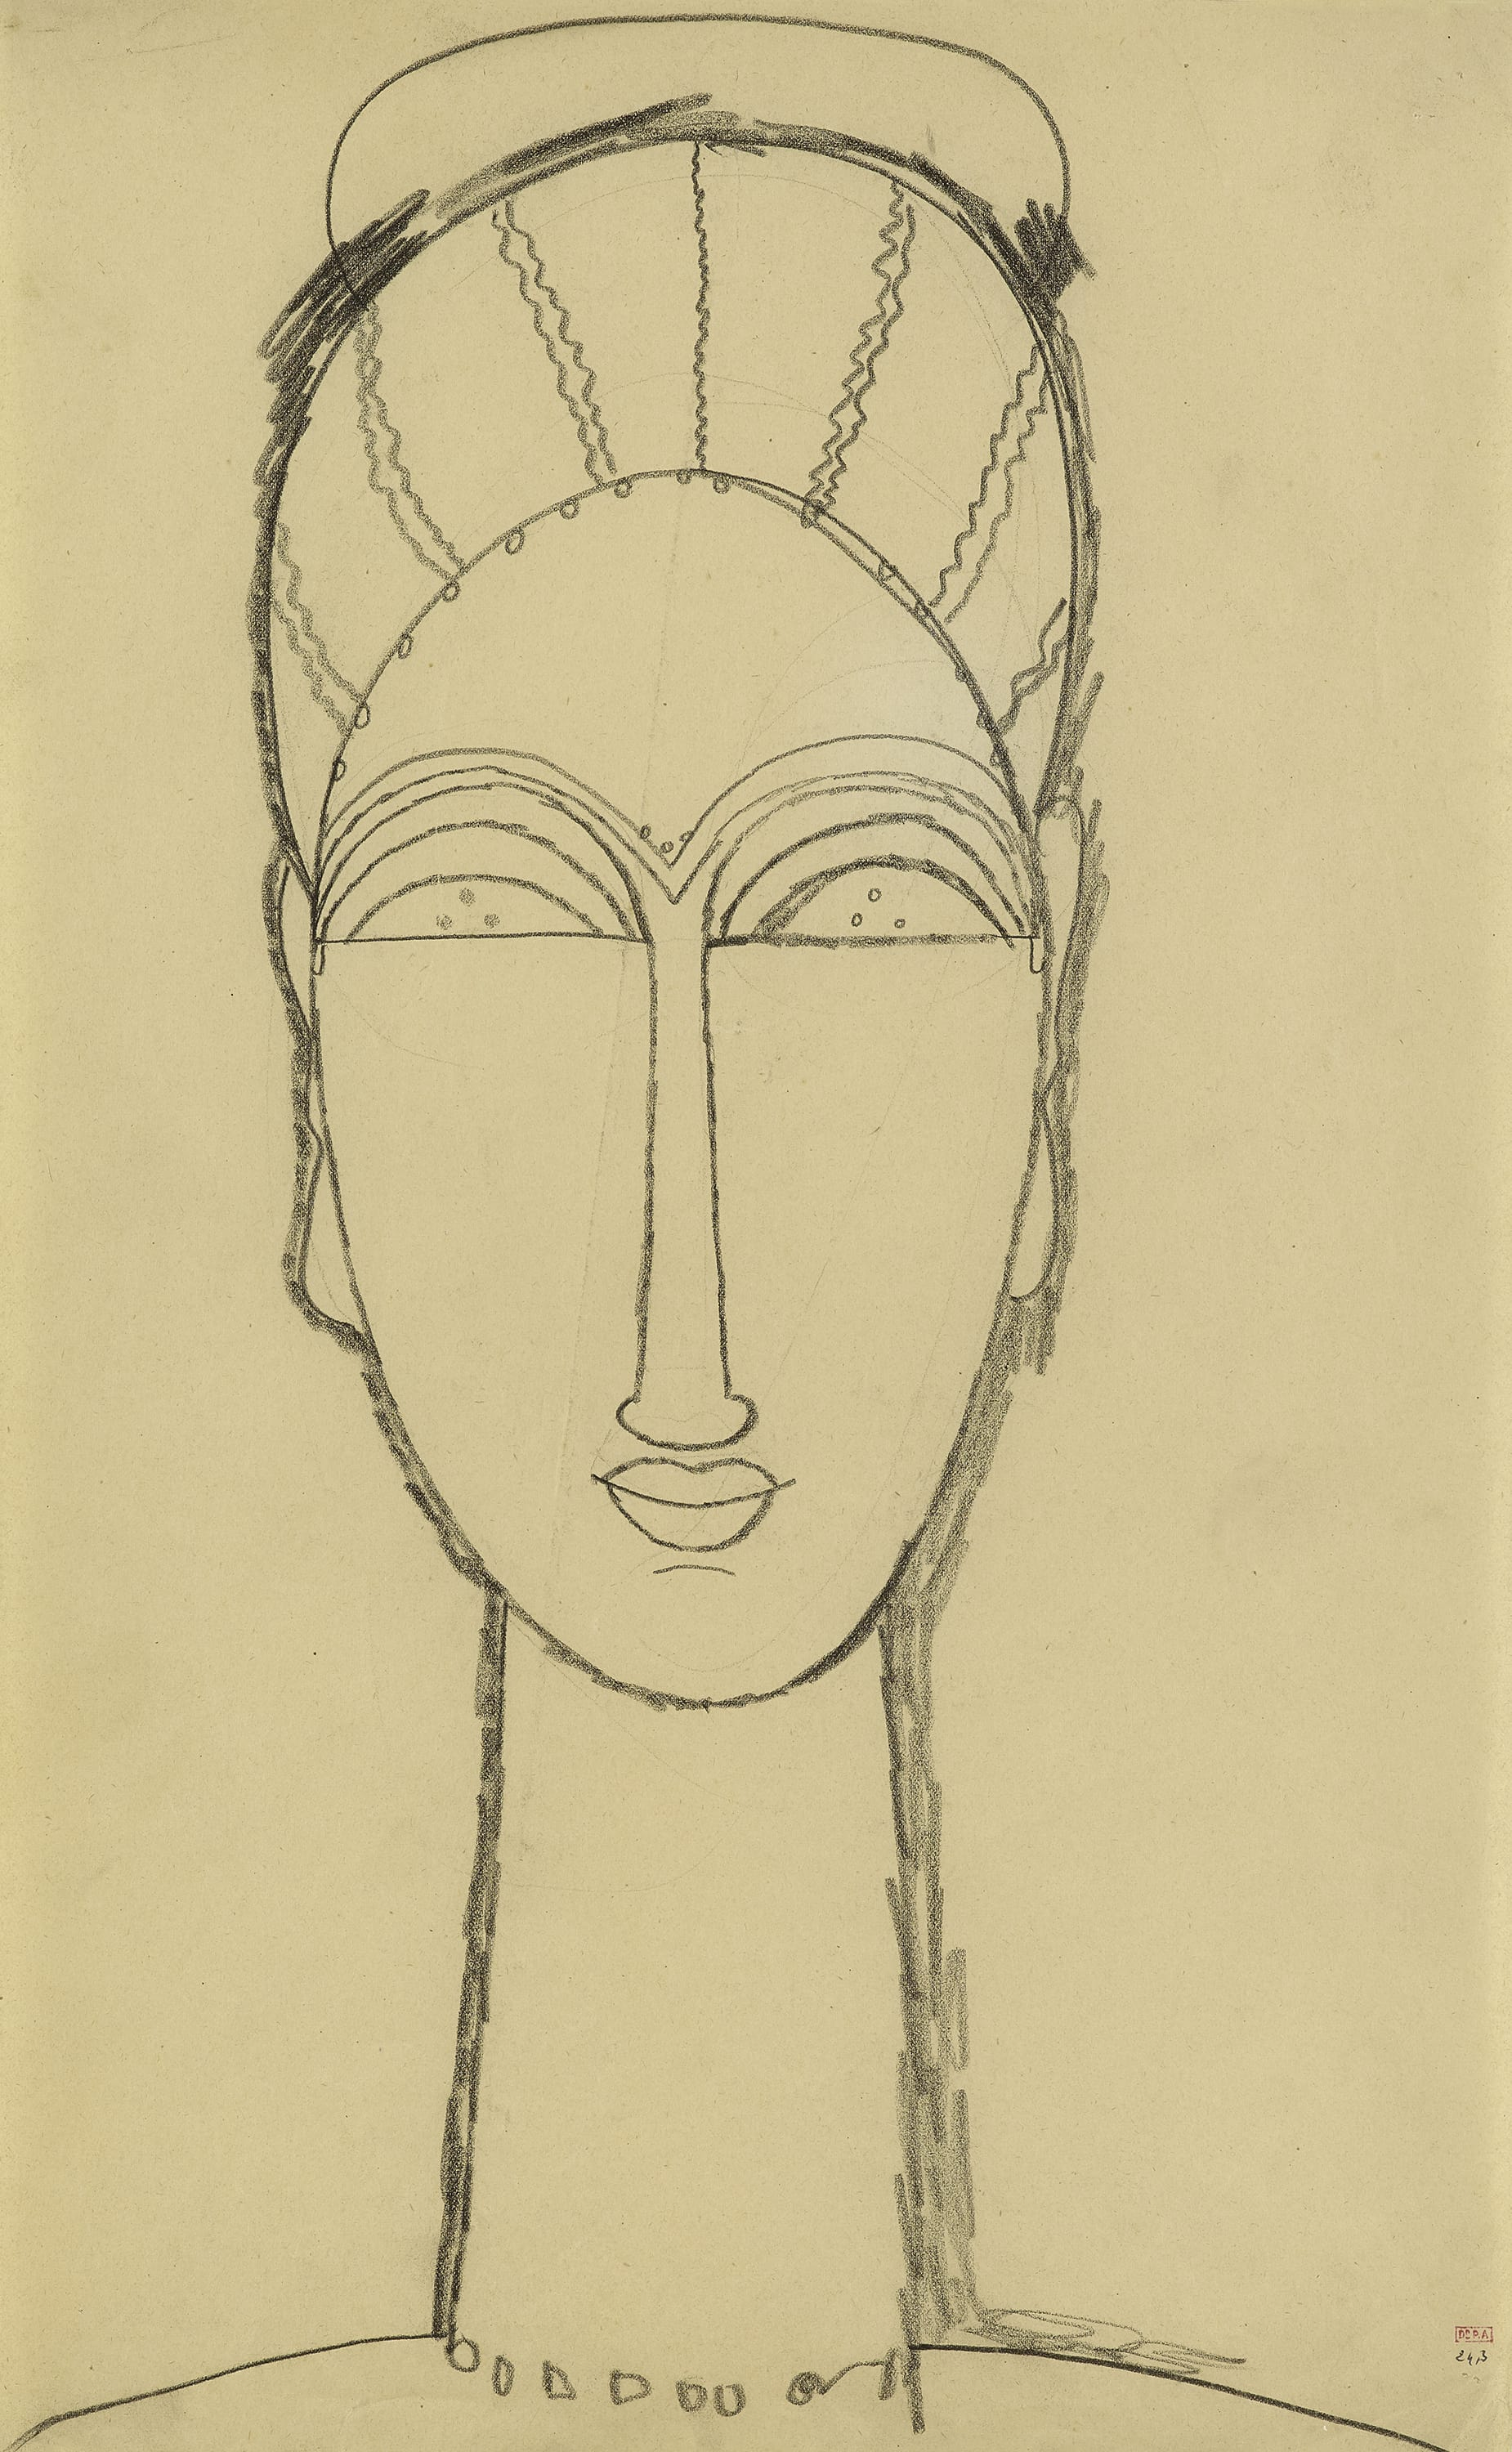 First Exhibition in the U.S. to Focus on Amedeo Modigliani's Early Work